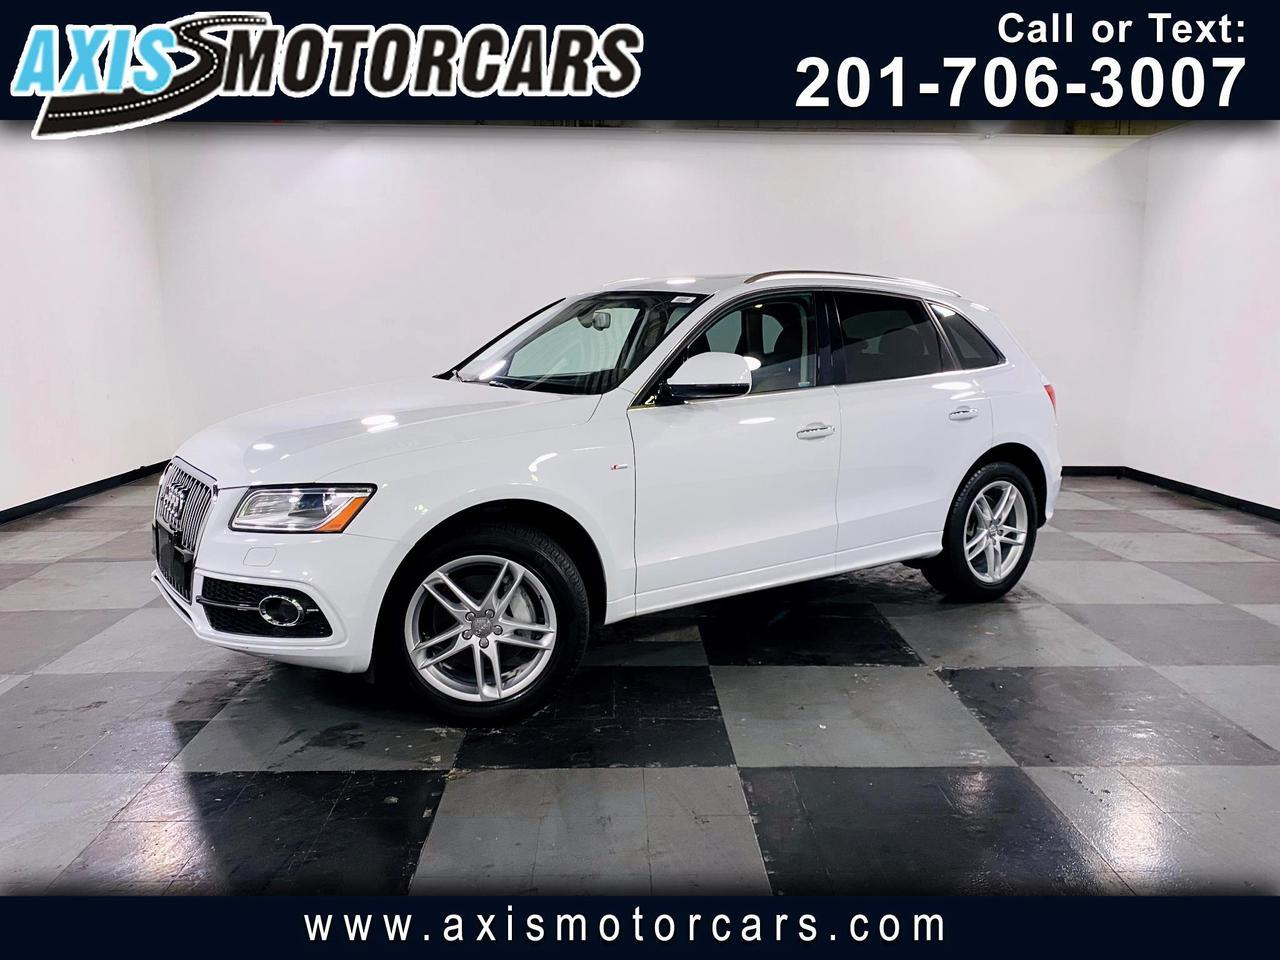 2016 Audi Q5 quattro 4dr 3.0T Premium w/Backup Camera Navigatio Jersey City NJ